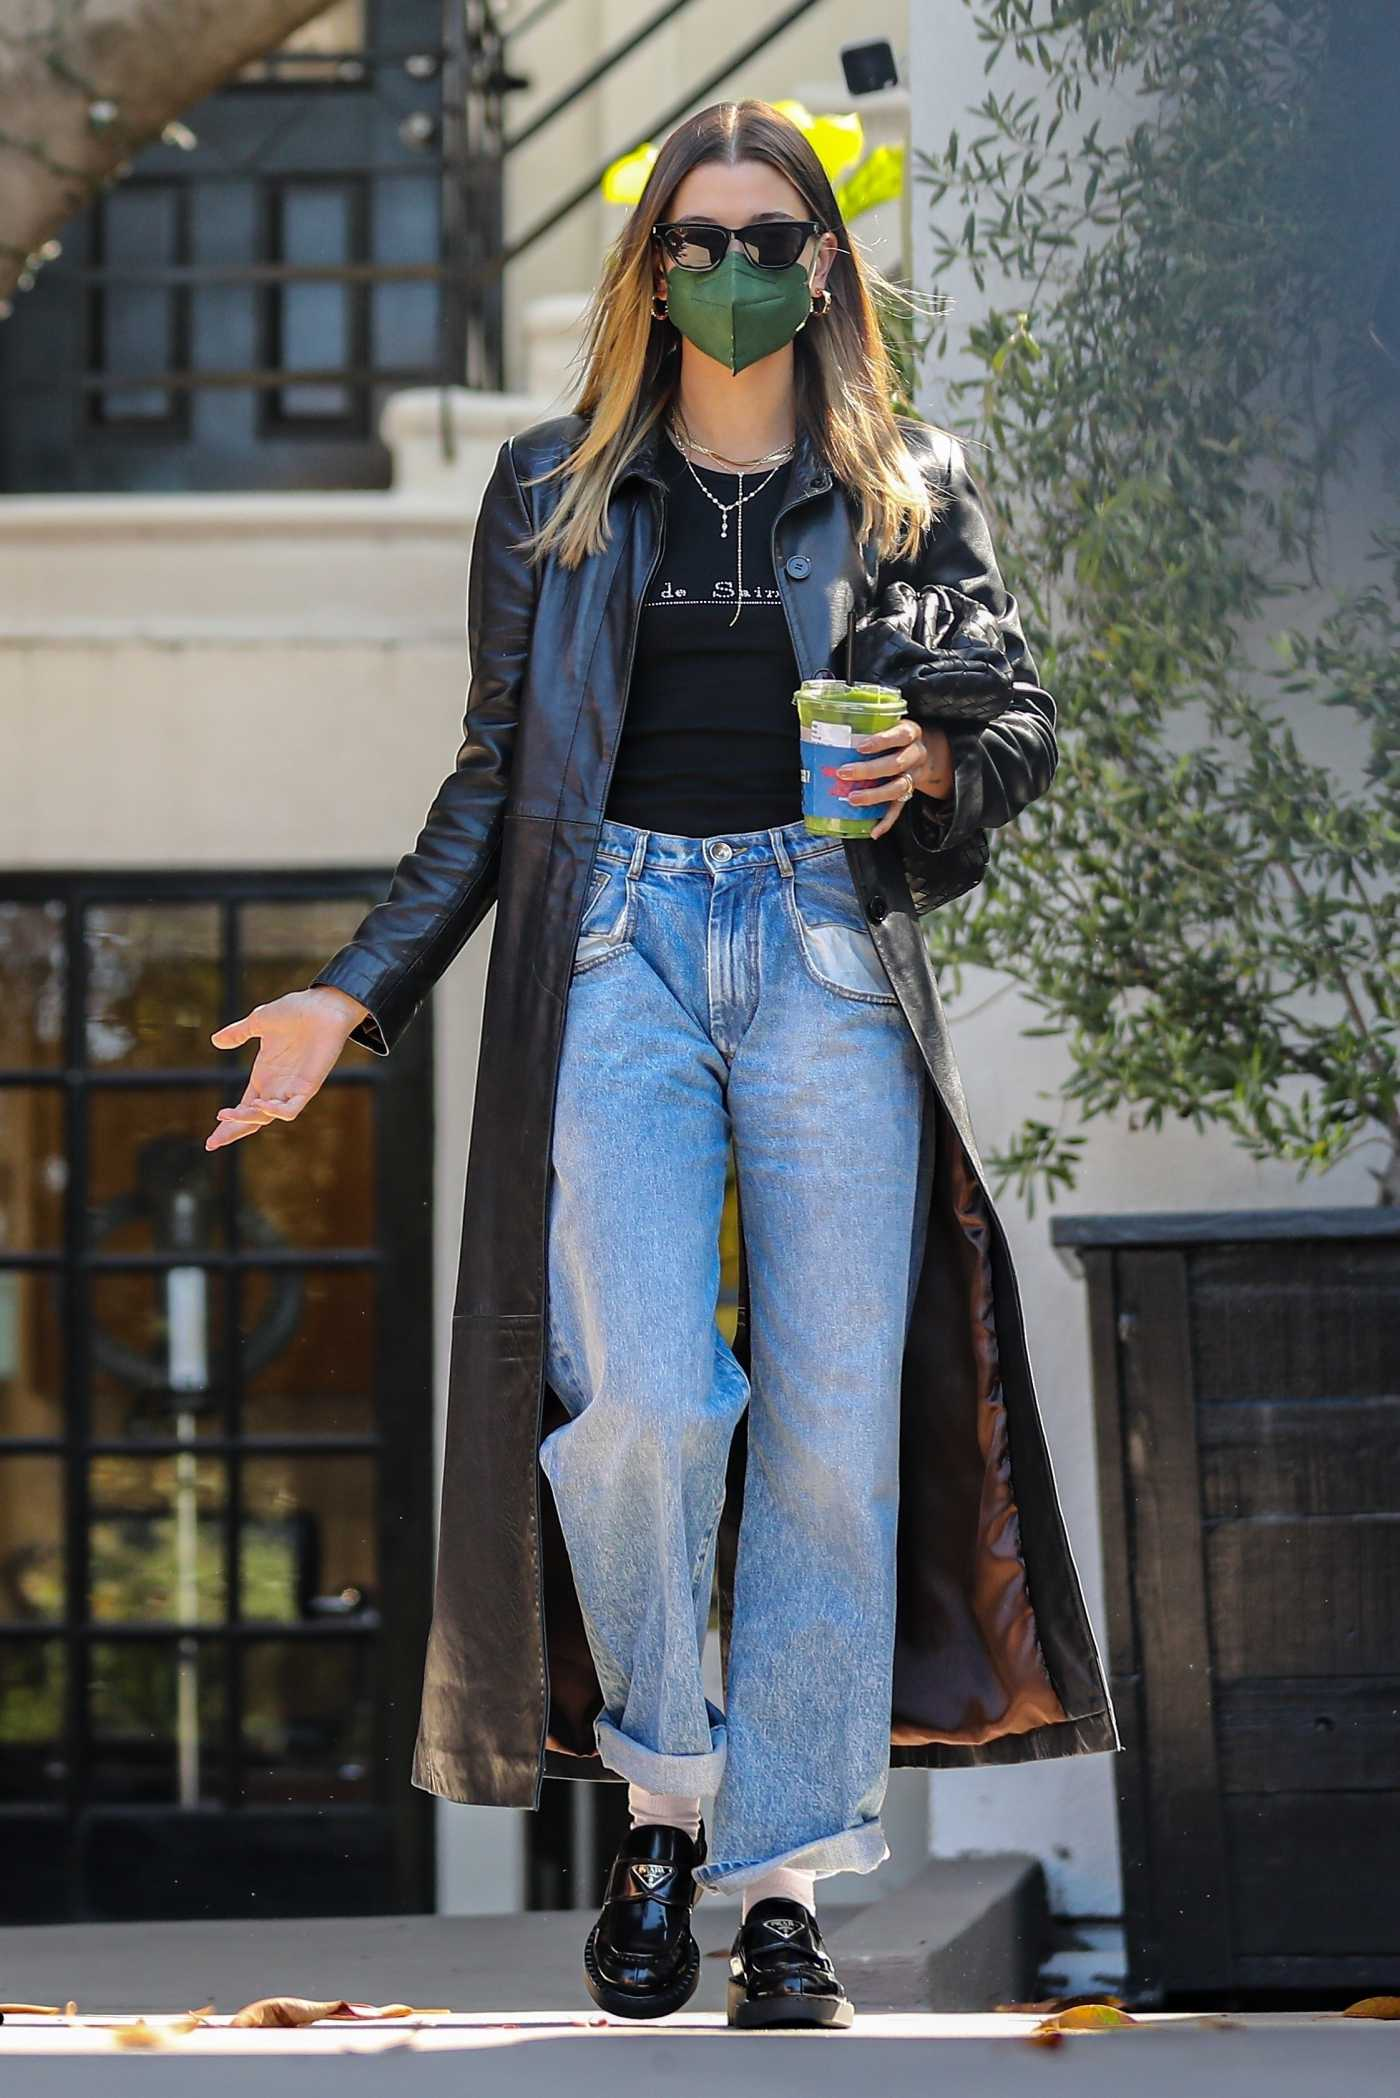 Hailey Baldwin in a Black Leather Trench Coat Was Seen Out in West Hollywood 03/29/2021